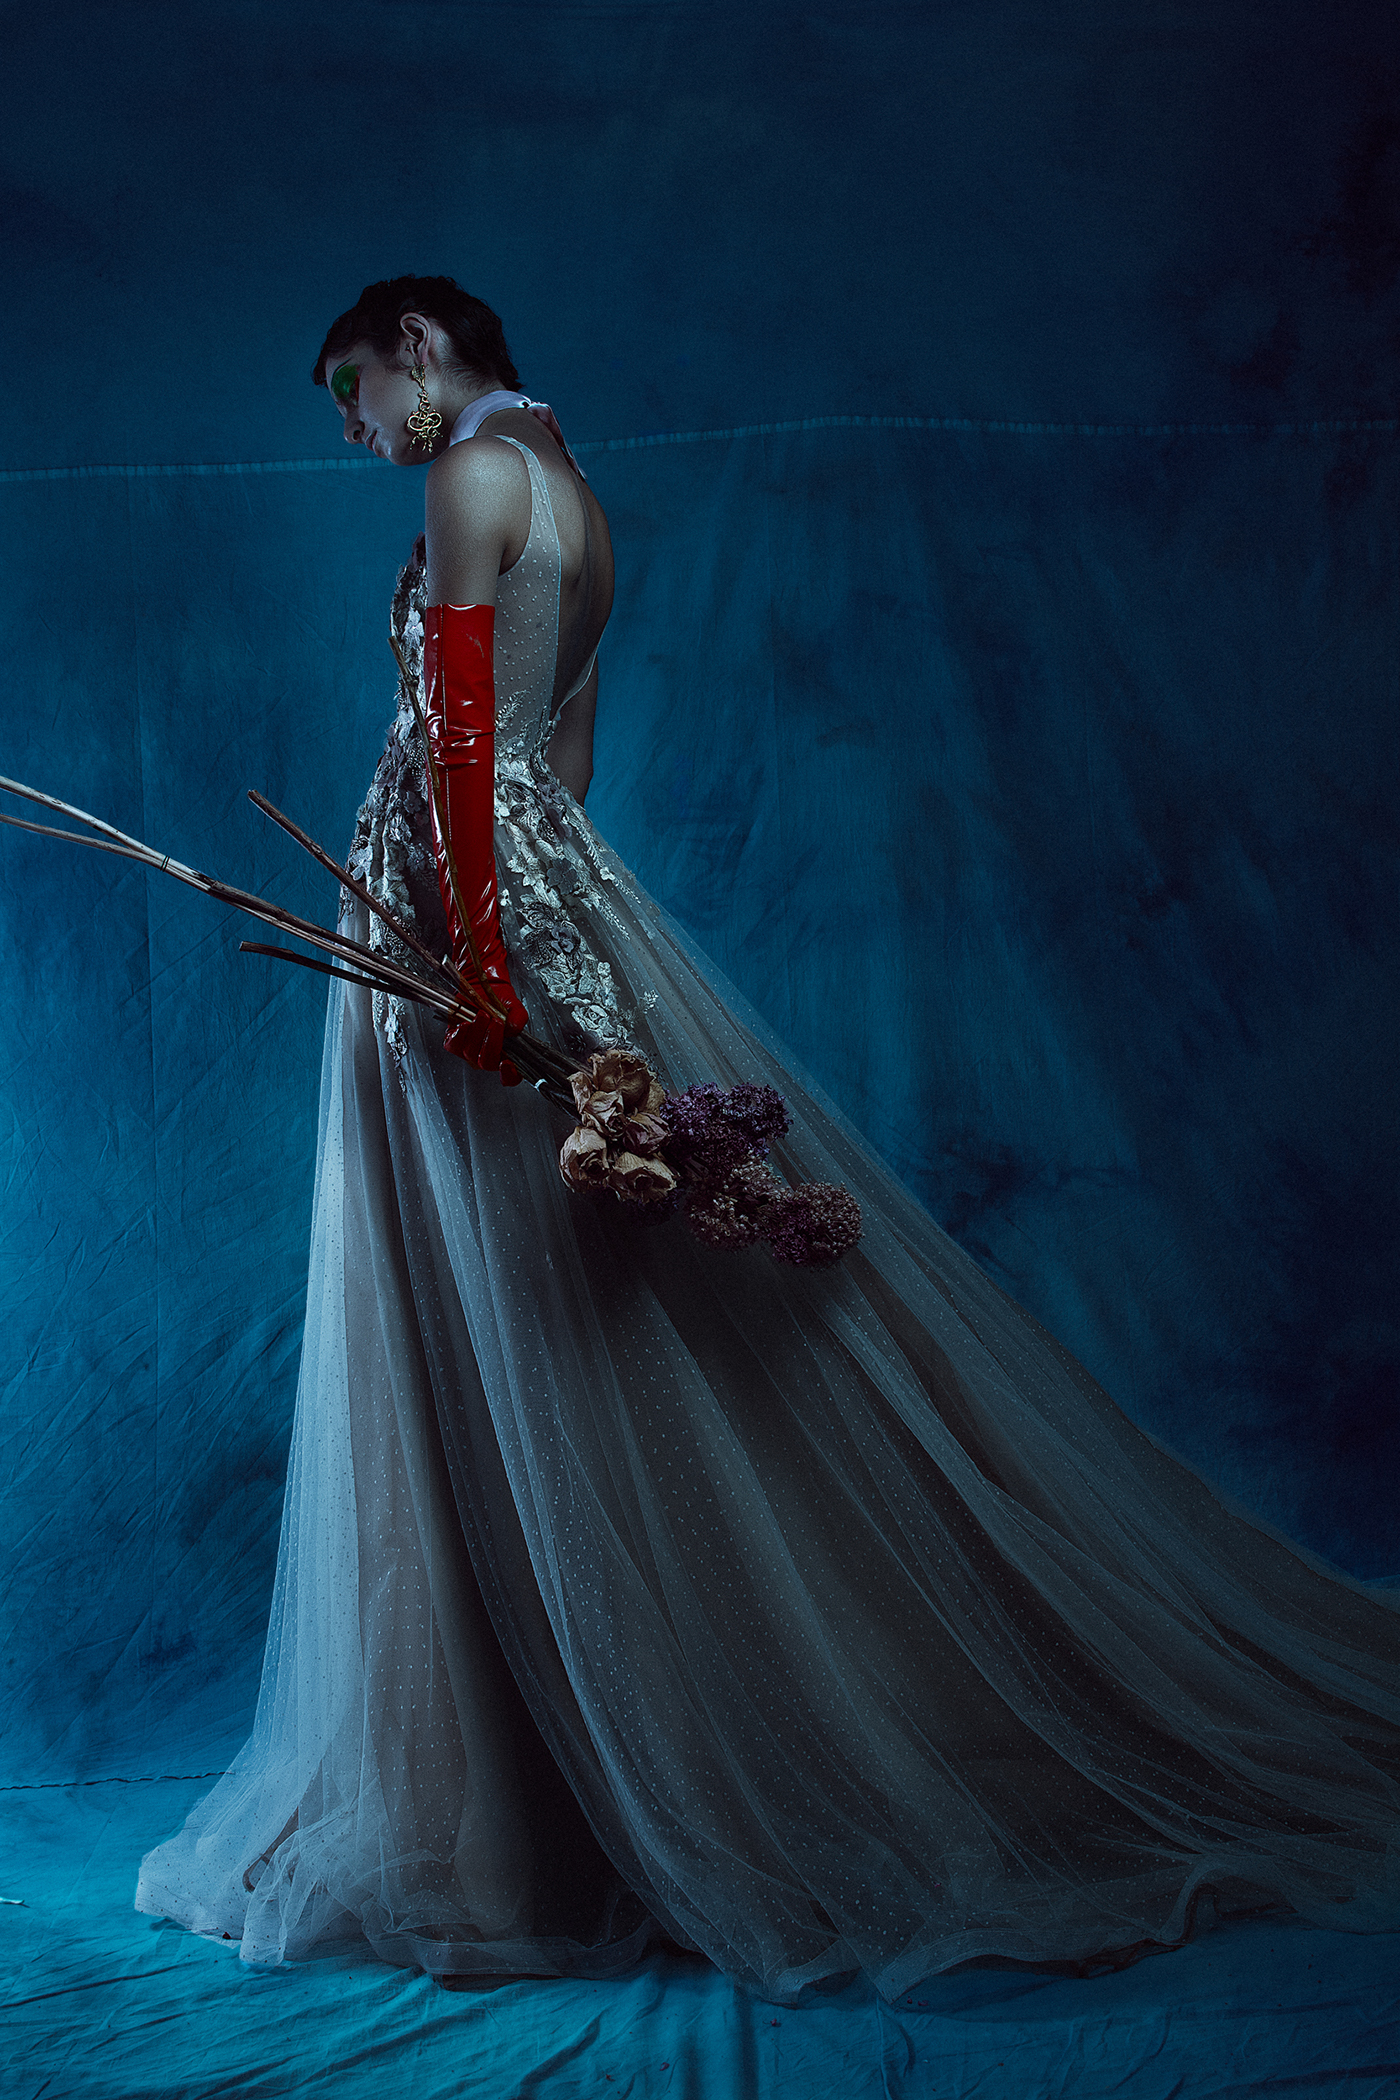 Queen of the abyss для Flesh Magazine / фото Fernando Rodriguez